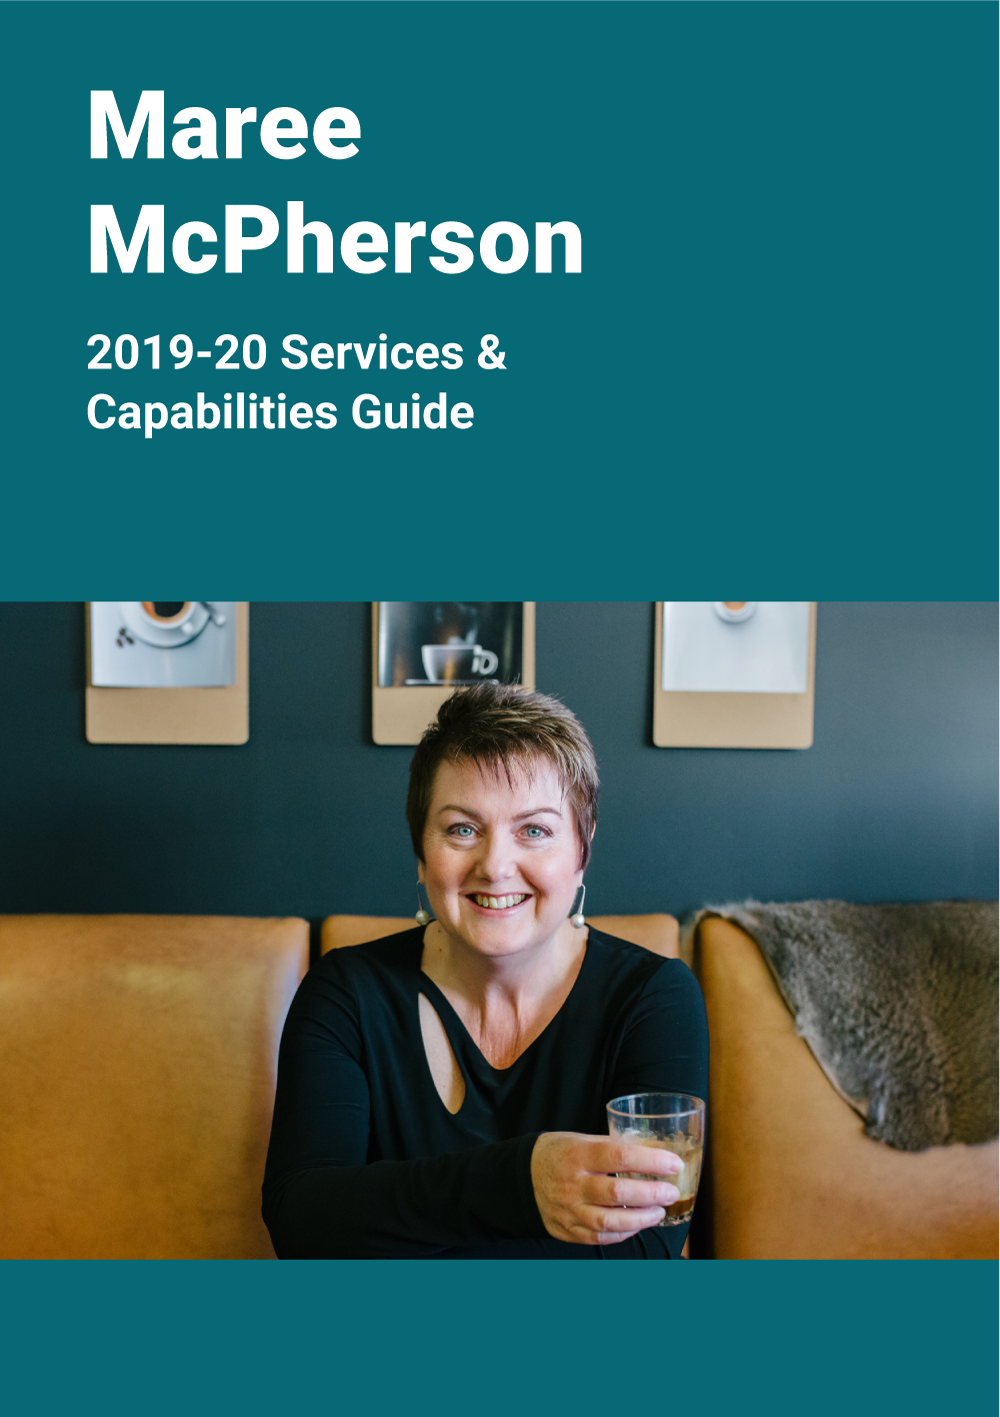 Maree McPherson Services and Capabilities Guide